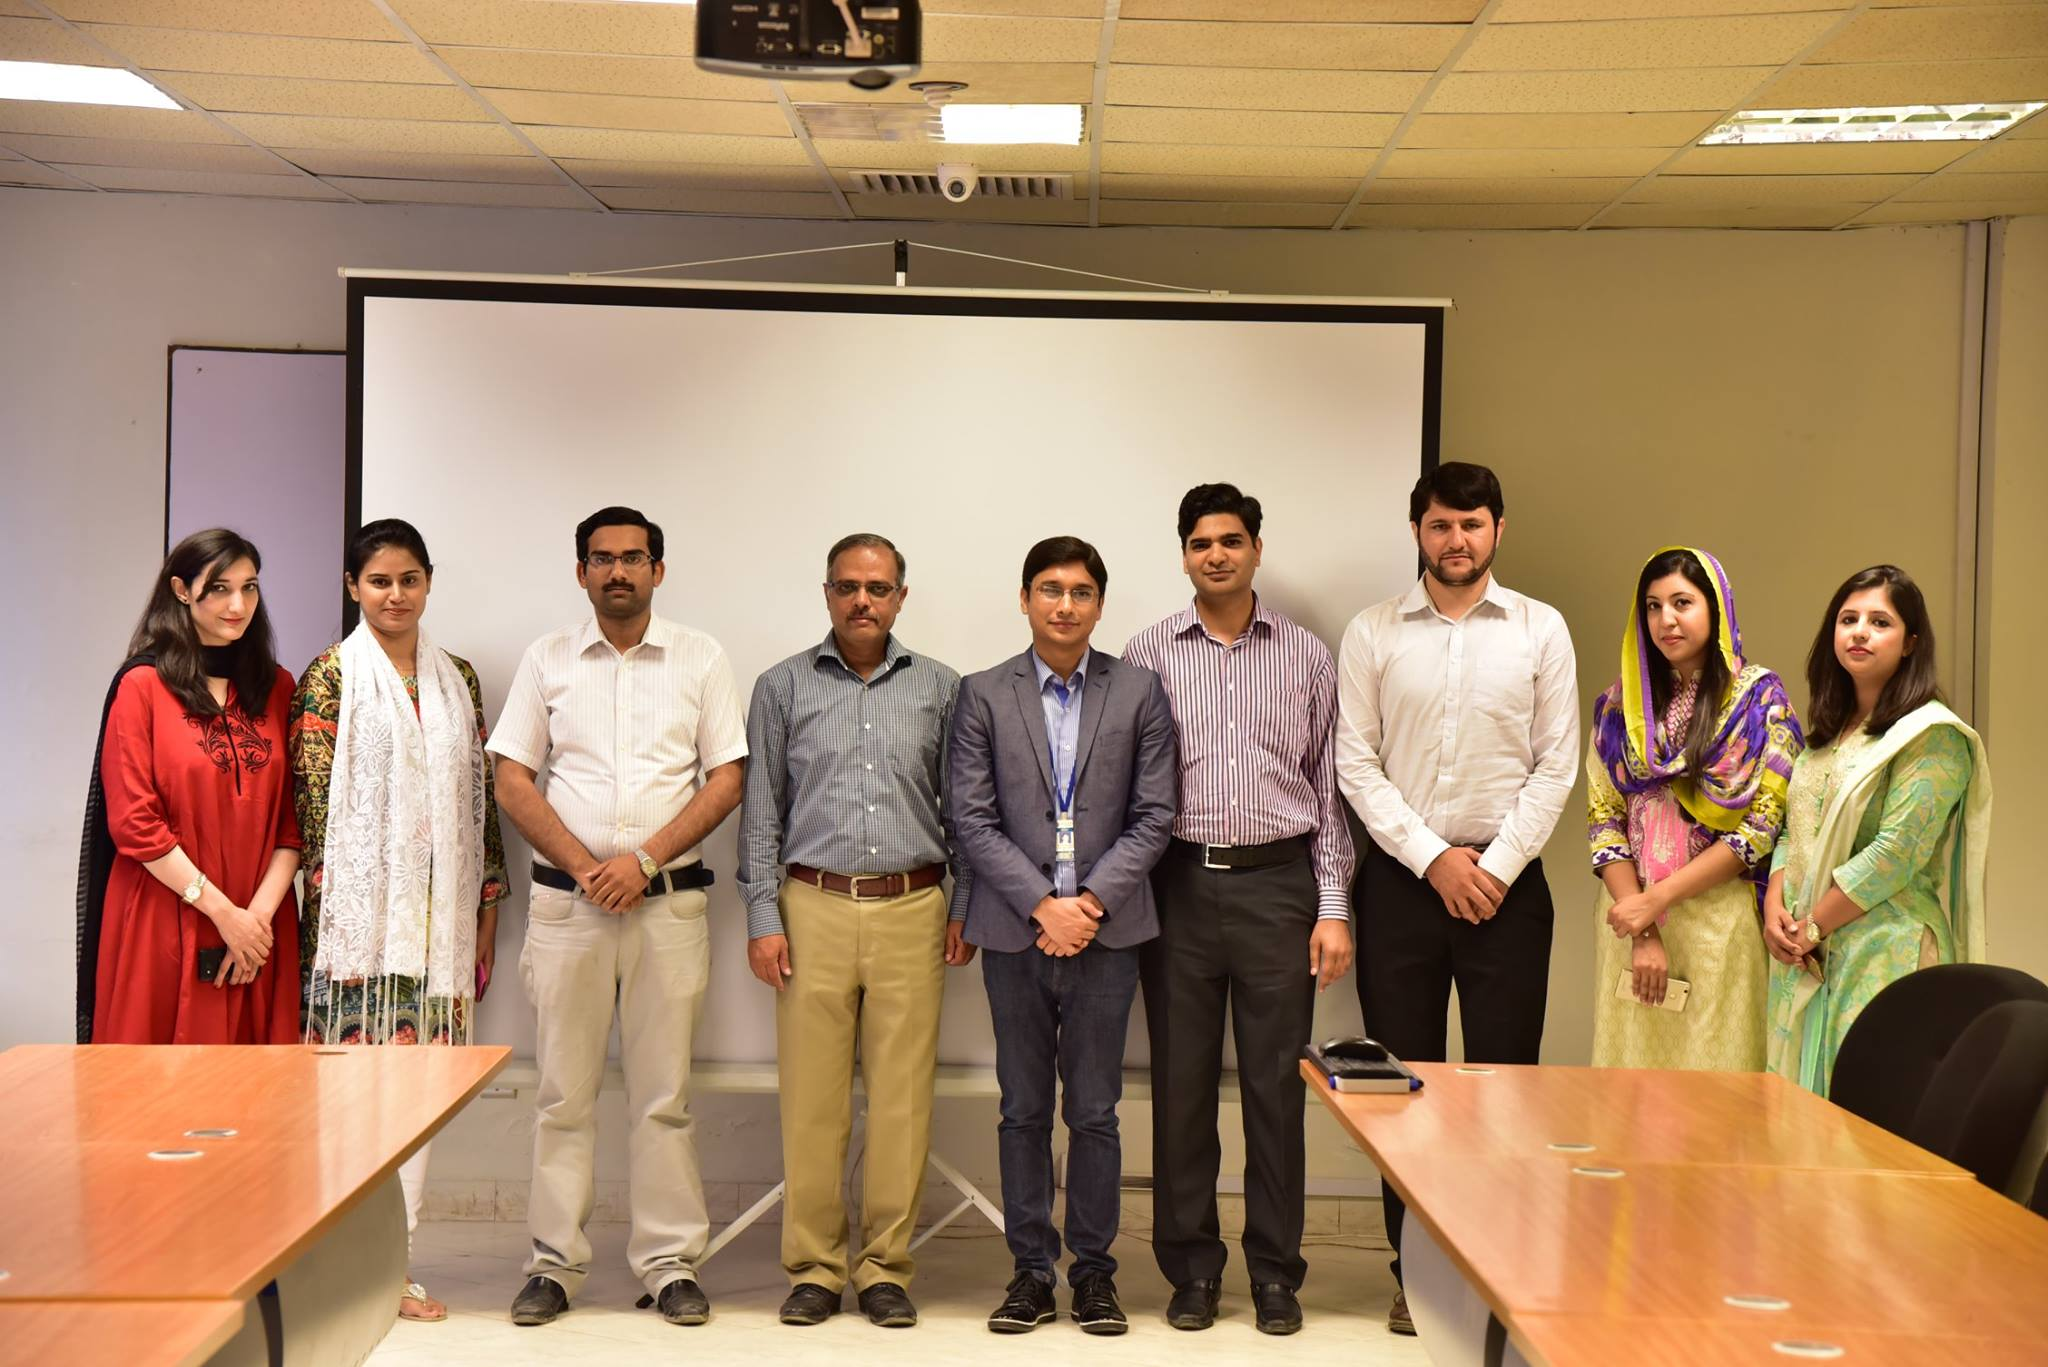 """Attending Seminar On """"Emerging Communication Technologies"""" At Department Of Electrical Engineering, Iqra University, Islamabad"""